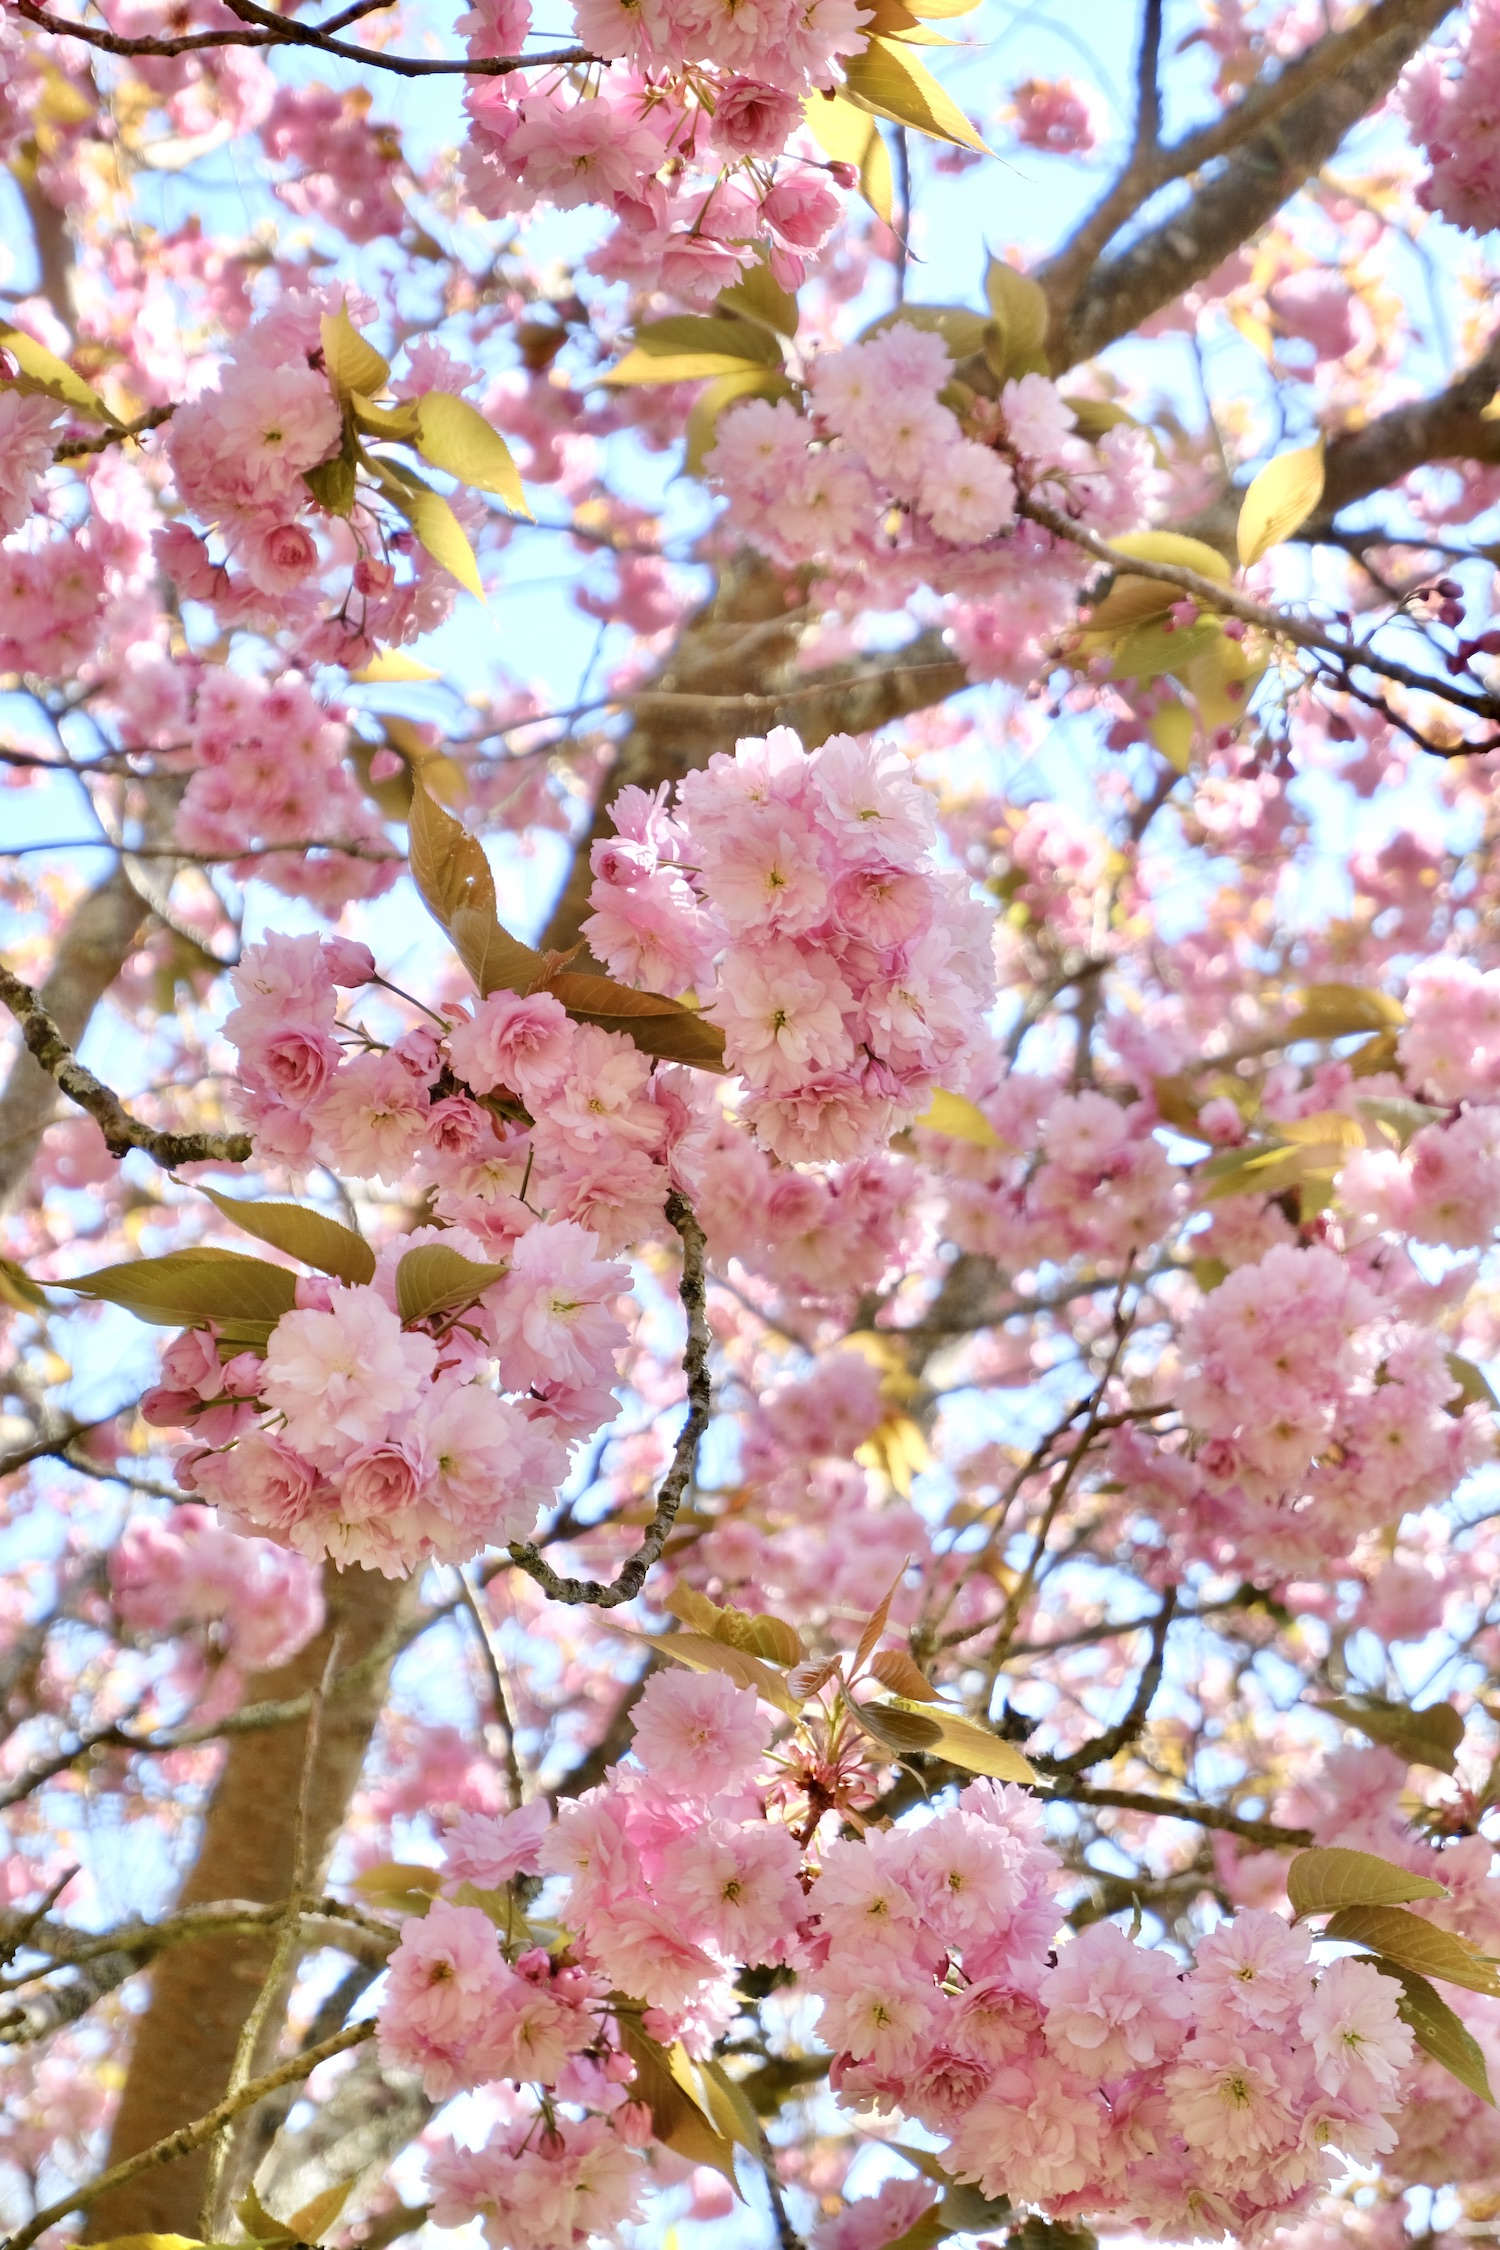 Normandy cherry blossoms